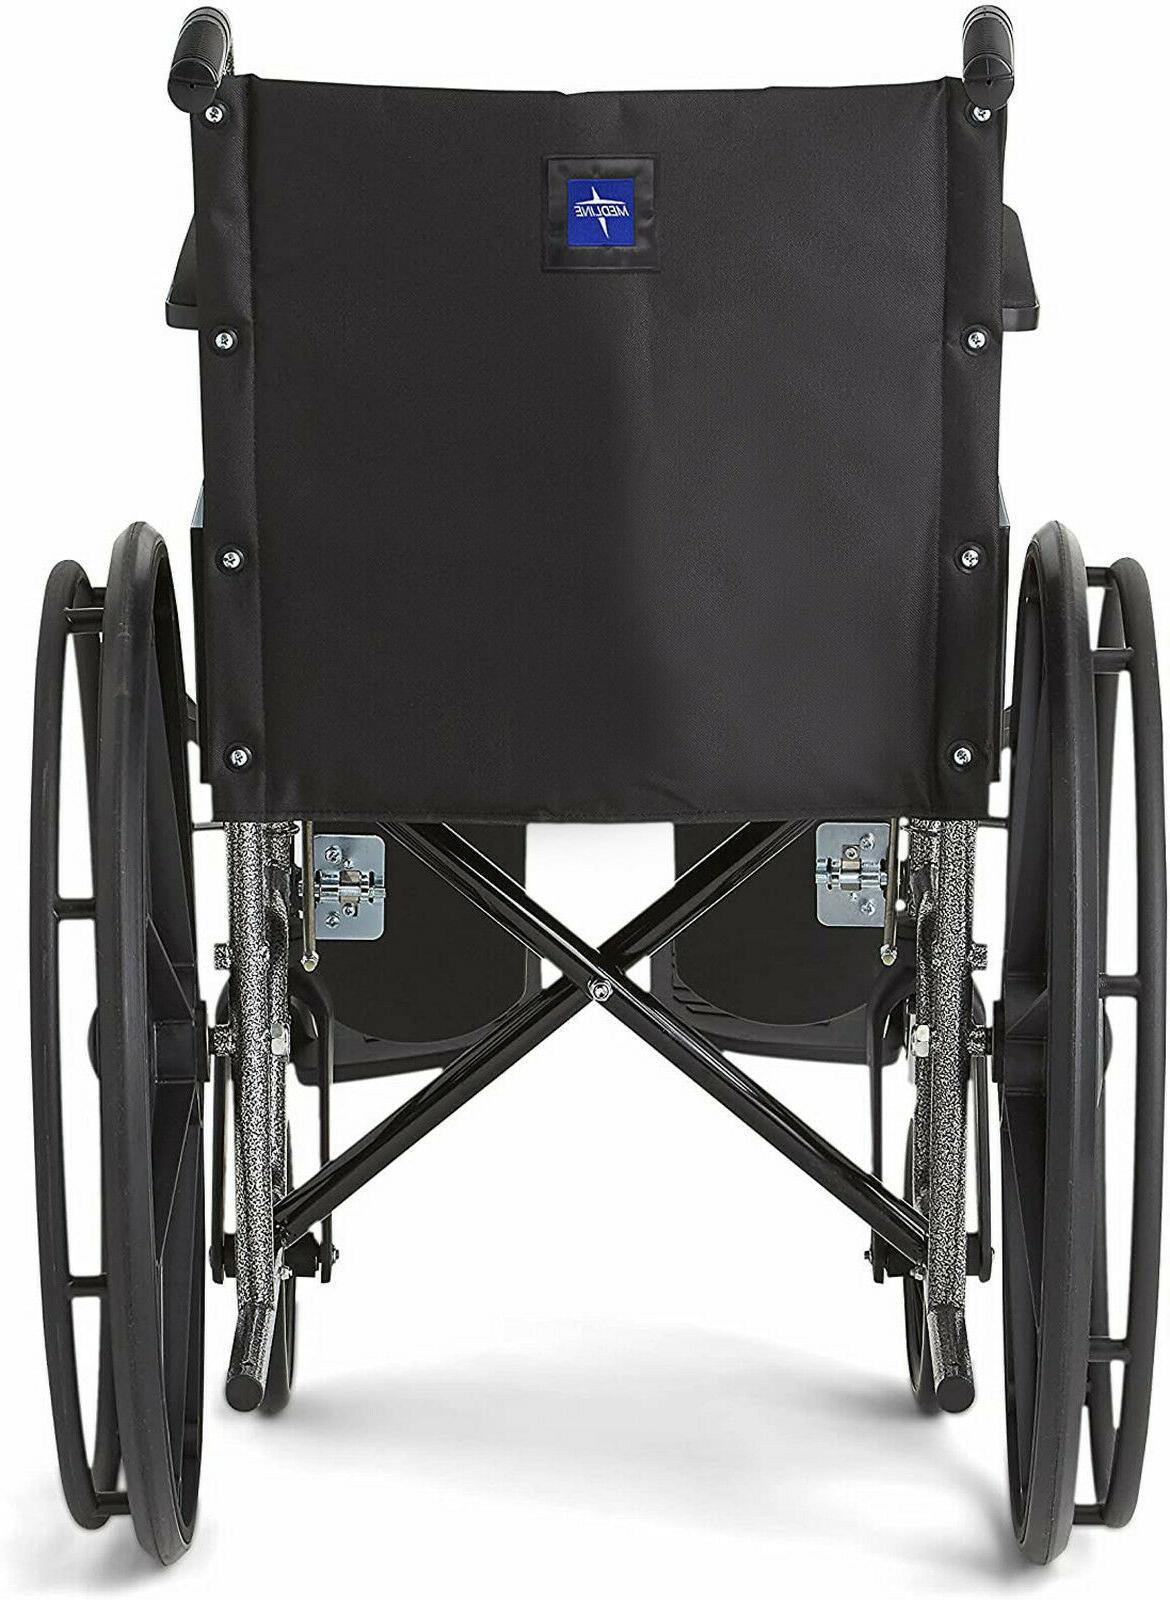 Medline K1 Basic Full-Length Rests Seat